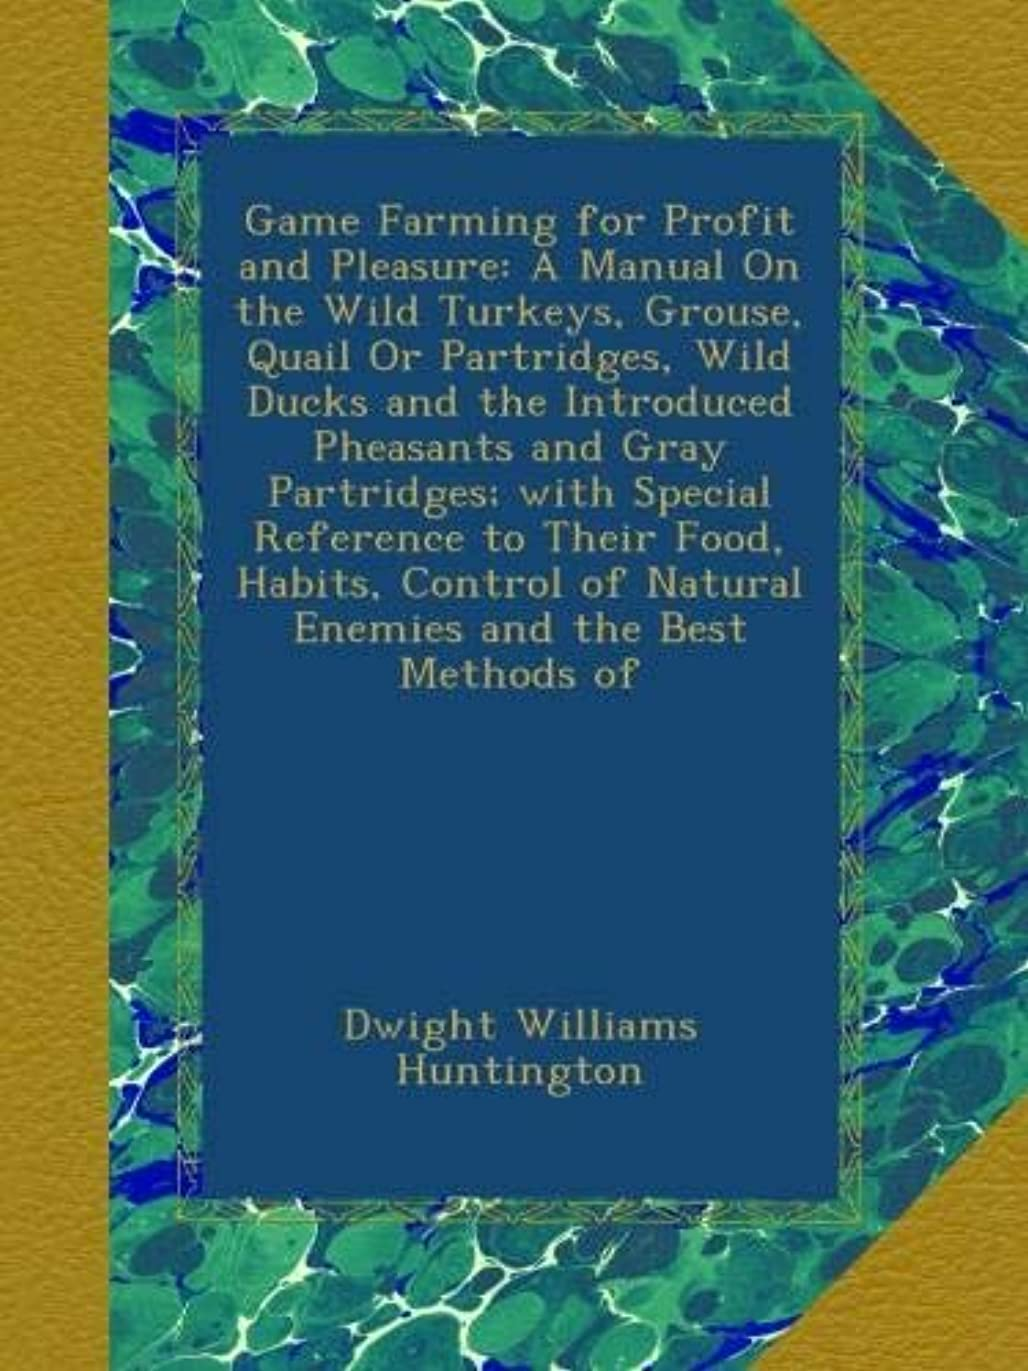 レポートを書く百万子供時代Game Farming for Profit and Pleasure: A Manual On the Wild Turkeys, Grouse, Quail Or Partridges, Wild Ducks and the Introduced Pheasants and Gray Partridges; with Special Reference to Their Food, Habits, Control of Natural Enemies and the Best Methods of